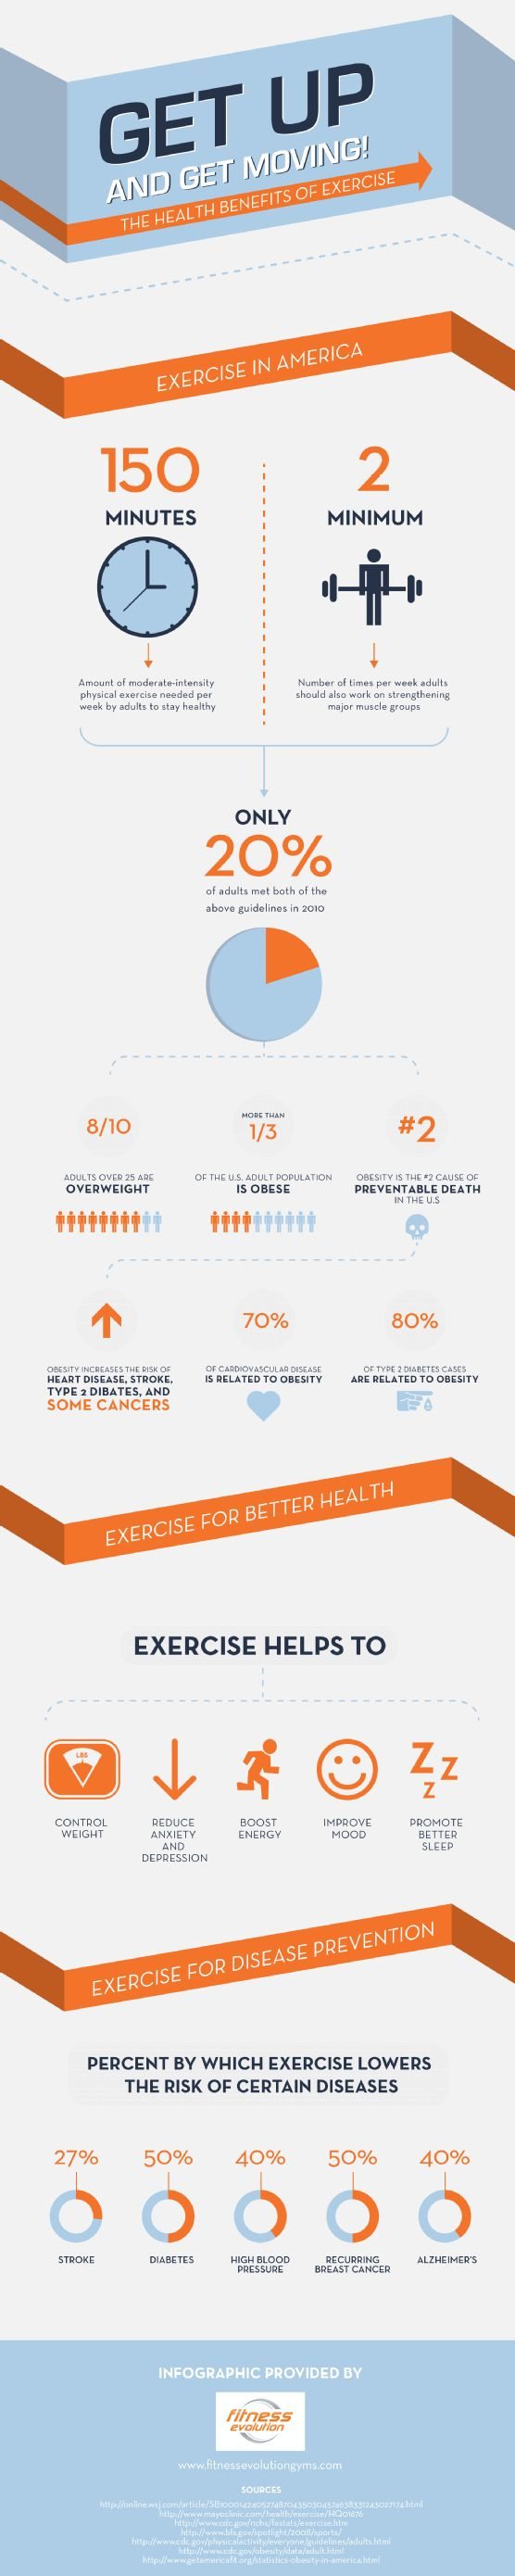 The benefits of exercise for improving employee health